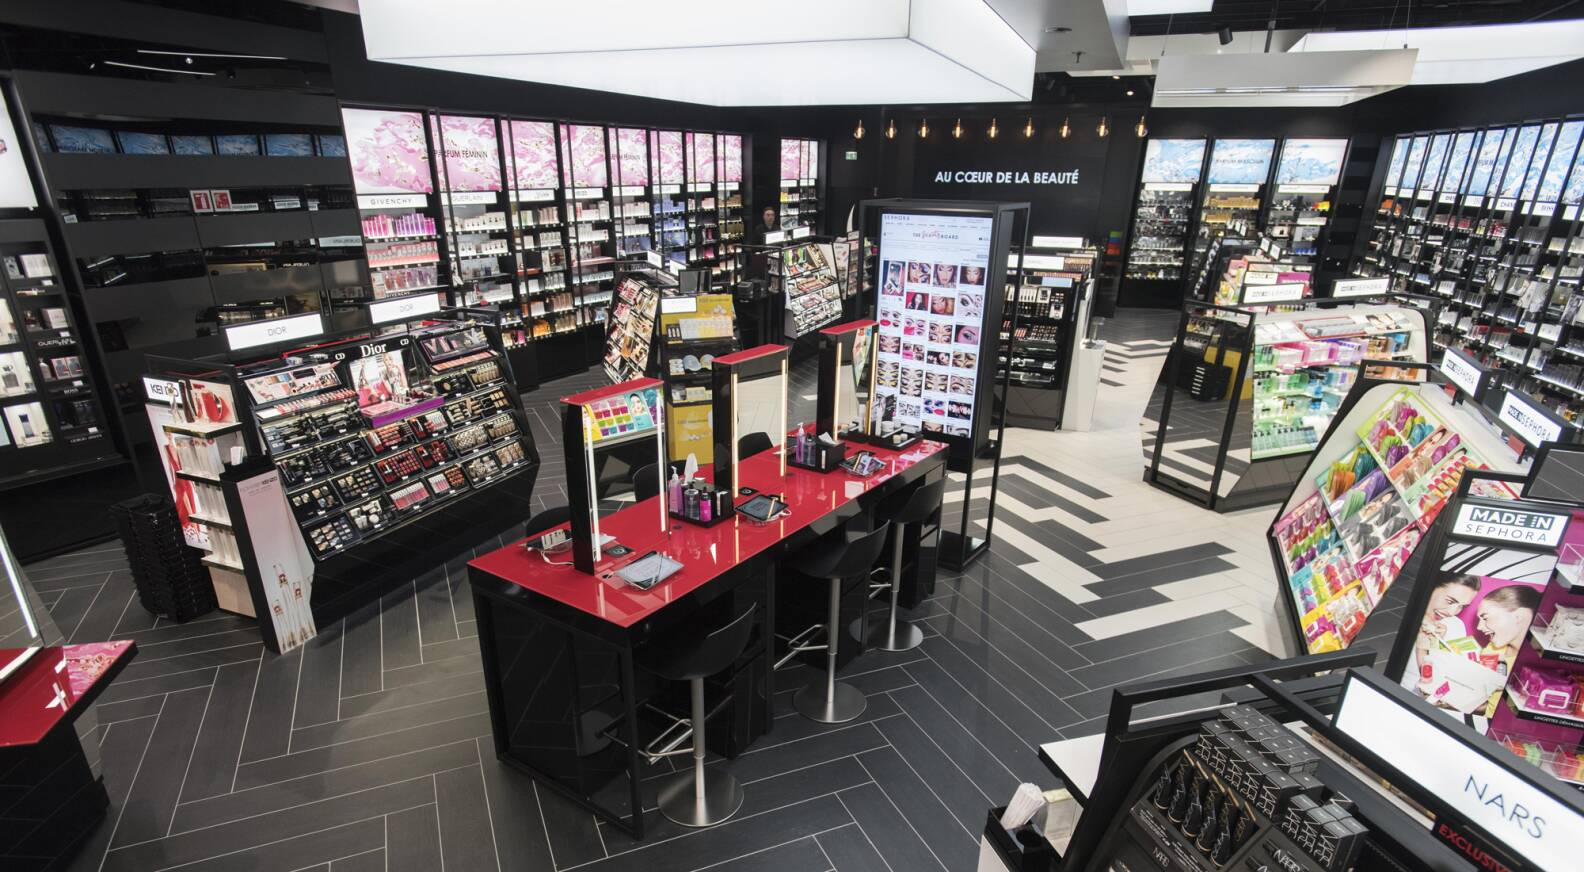 sephora rolls out new sephora experience connected store concept